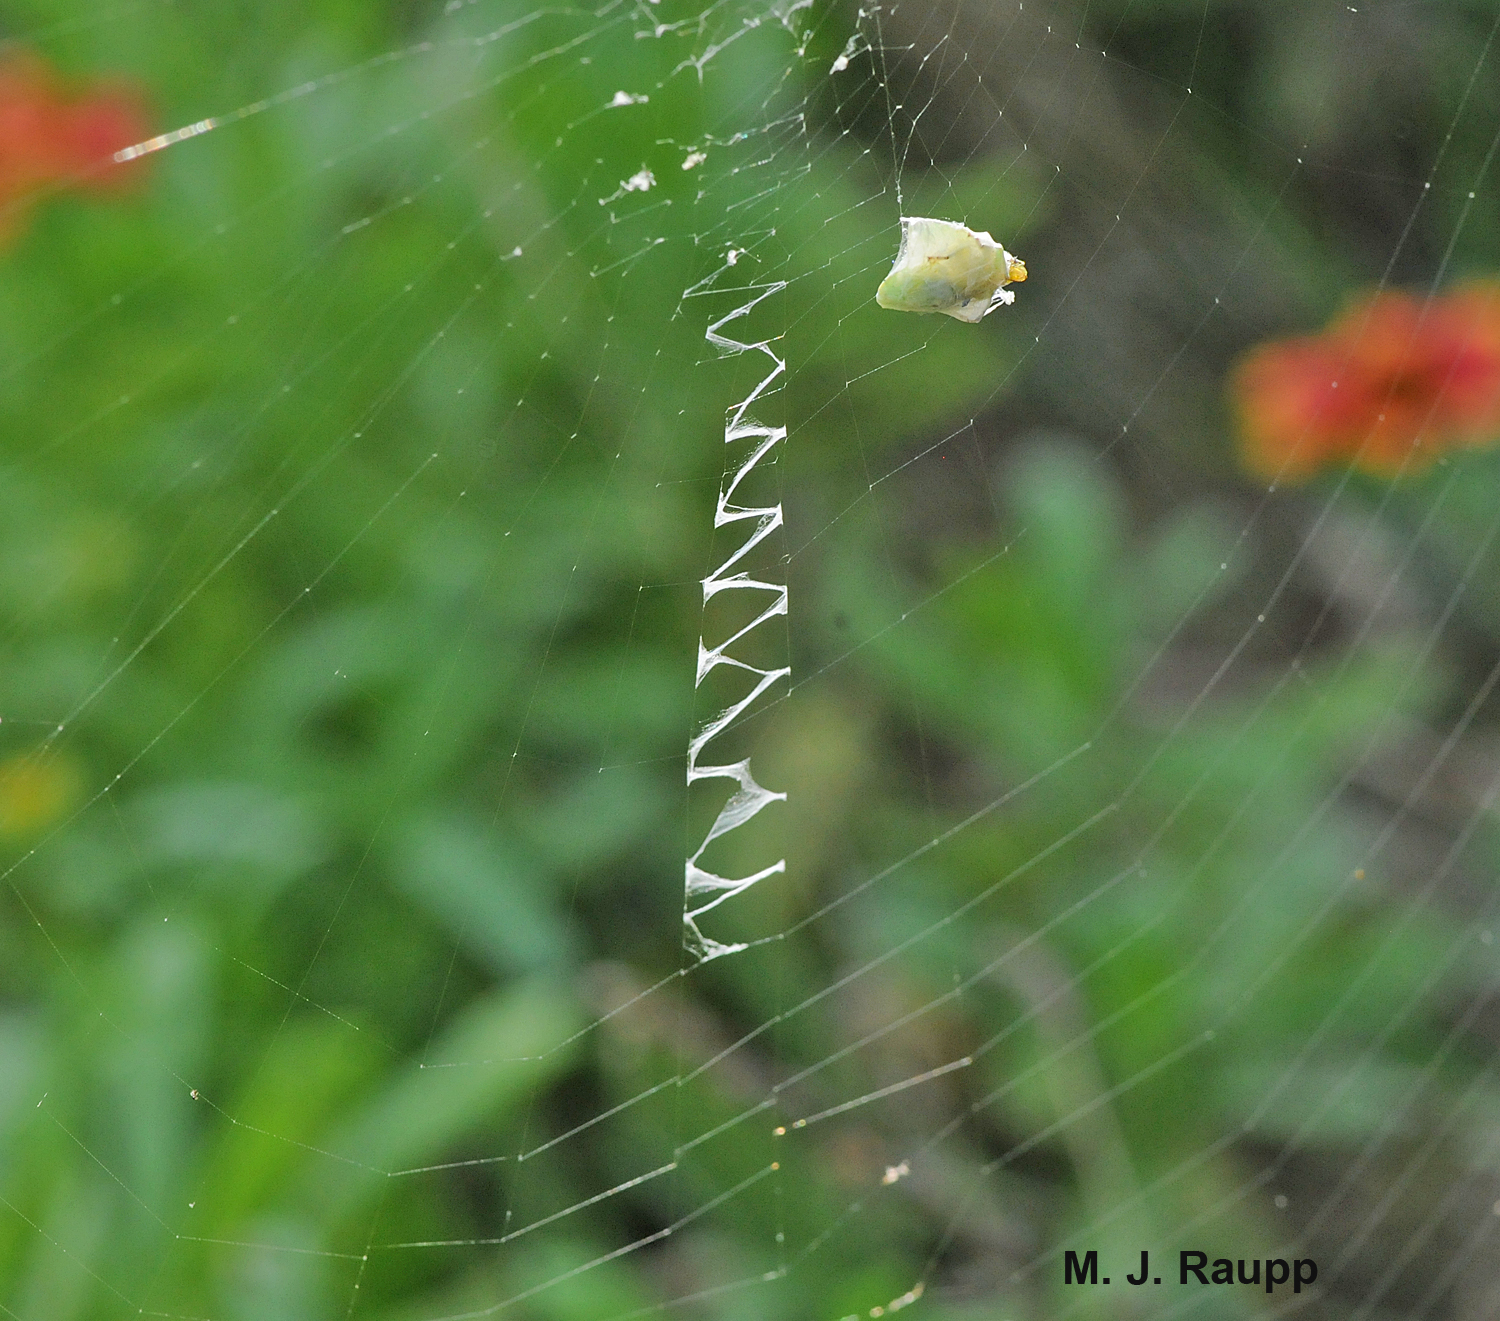 A stabilimentum of heavy silk adorns the center of this web.